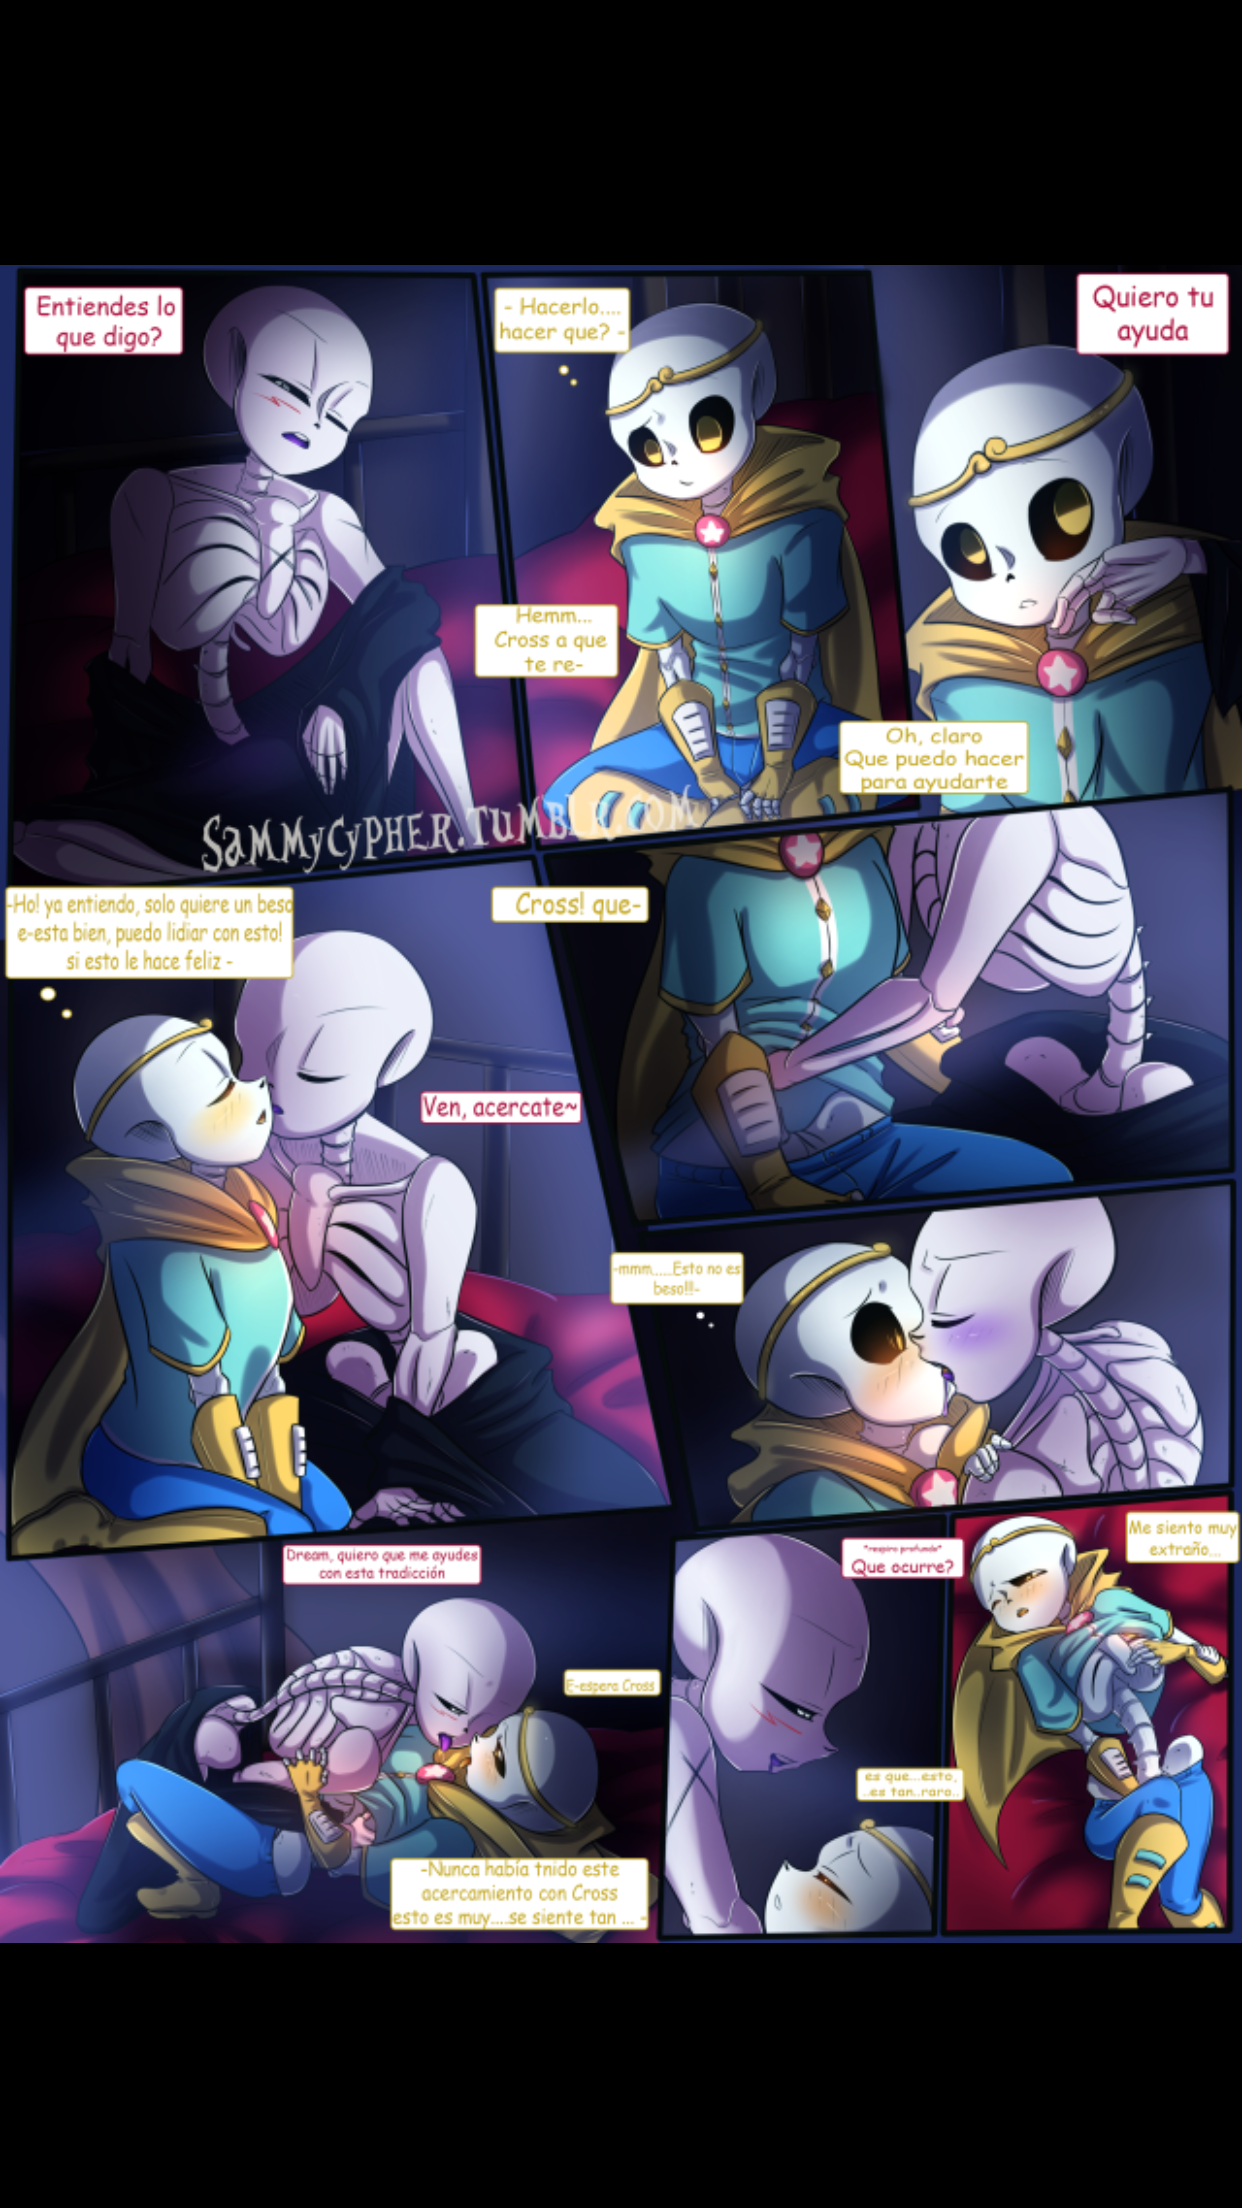 Pin by Gamzee Makara on Sanscest | Pinterest | Comics, Undertale ...